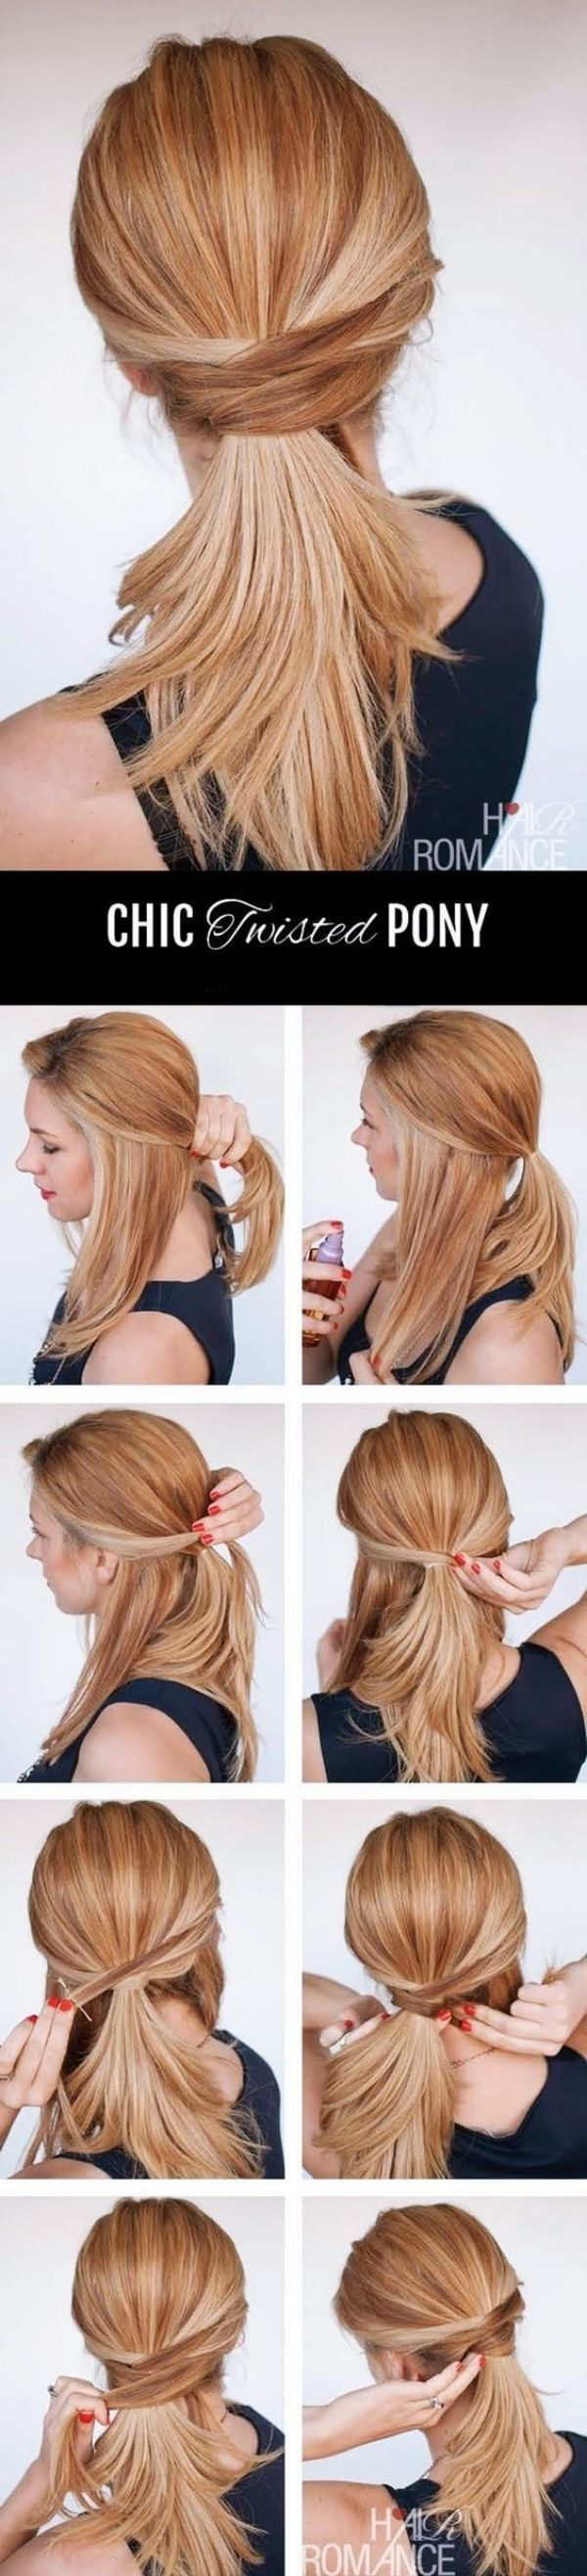 Hairstyles-That-Can-be-Done-in-3-Minutes